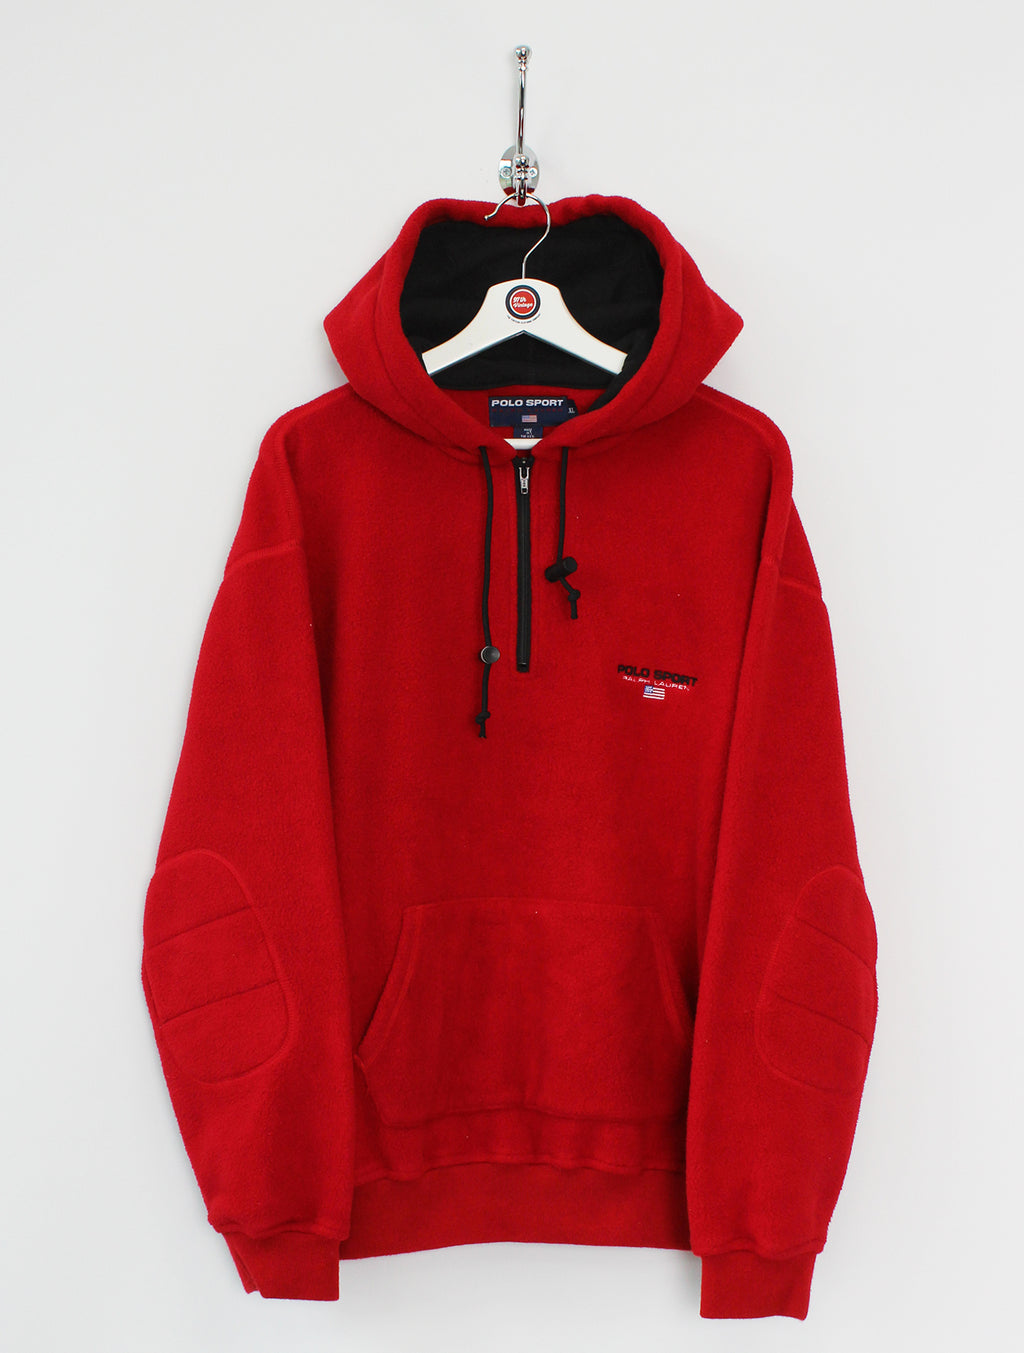 Ralph Lauren Polo Sport Fleece Hoodie (XL)